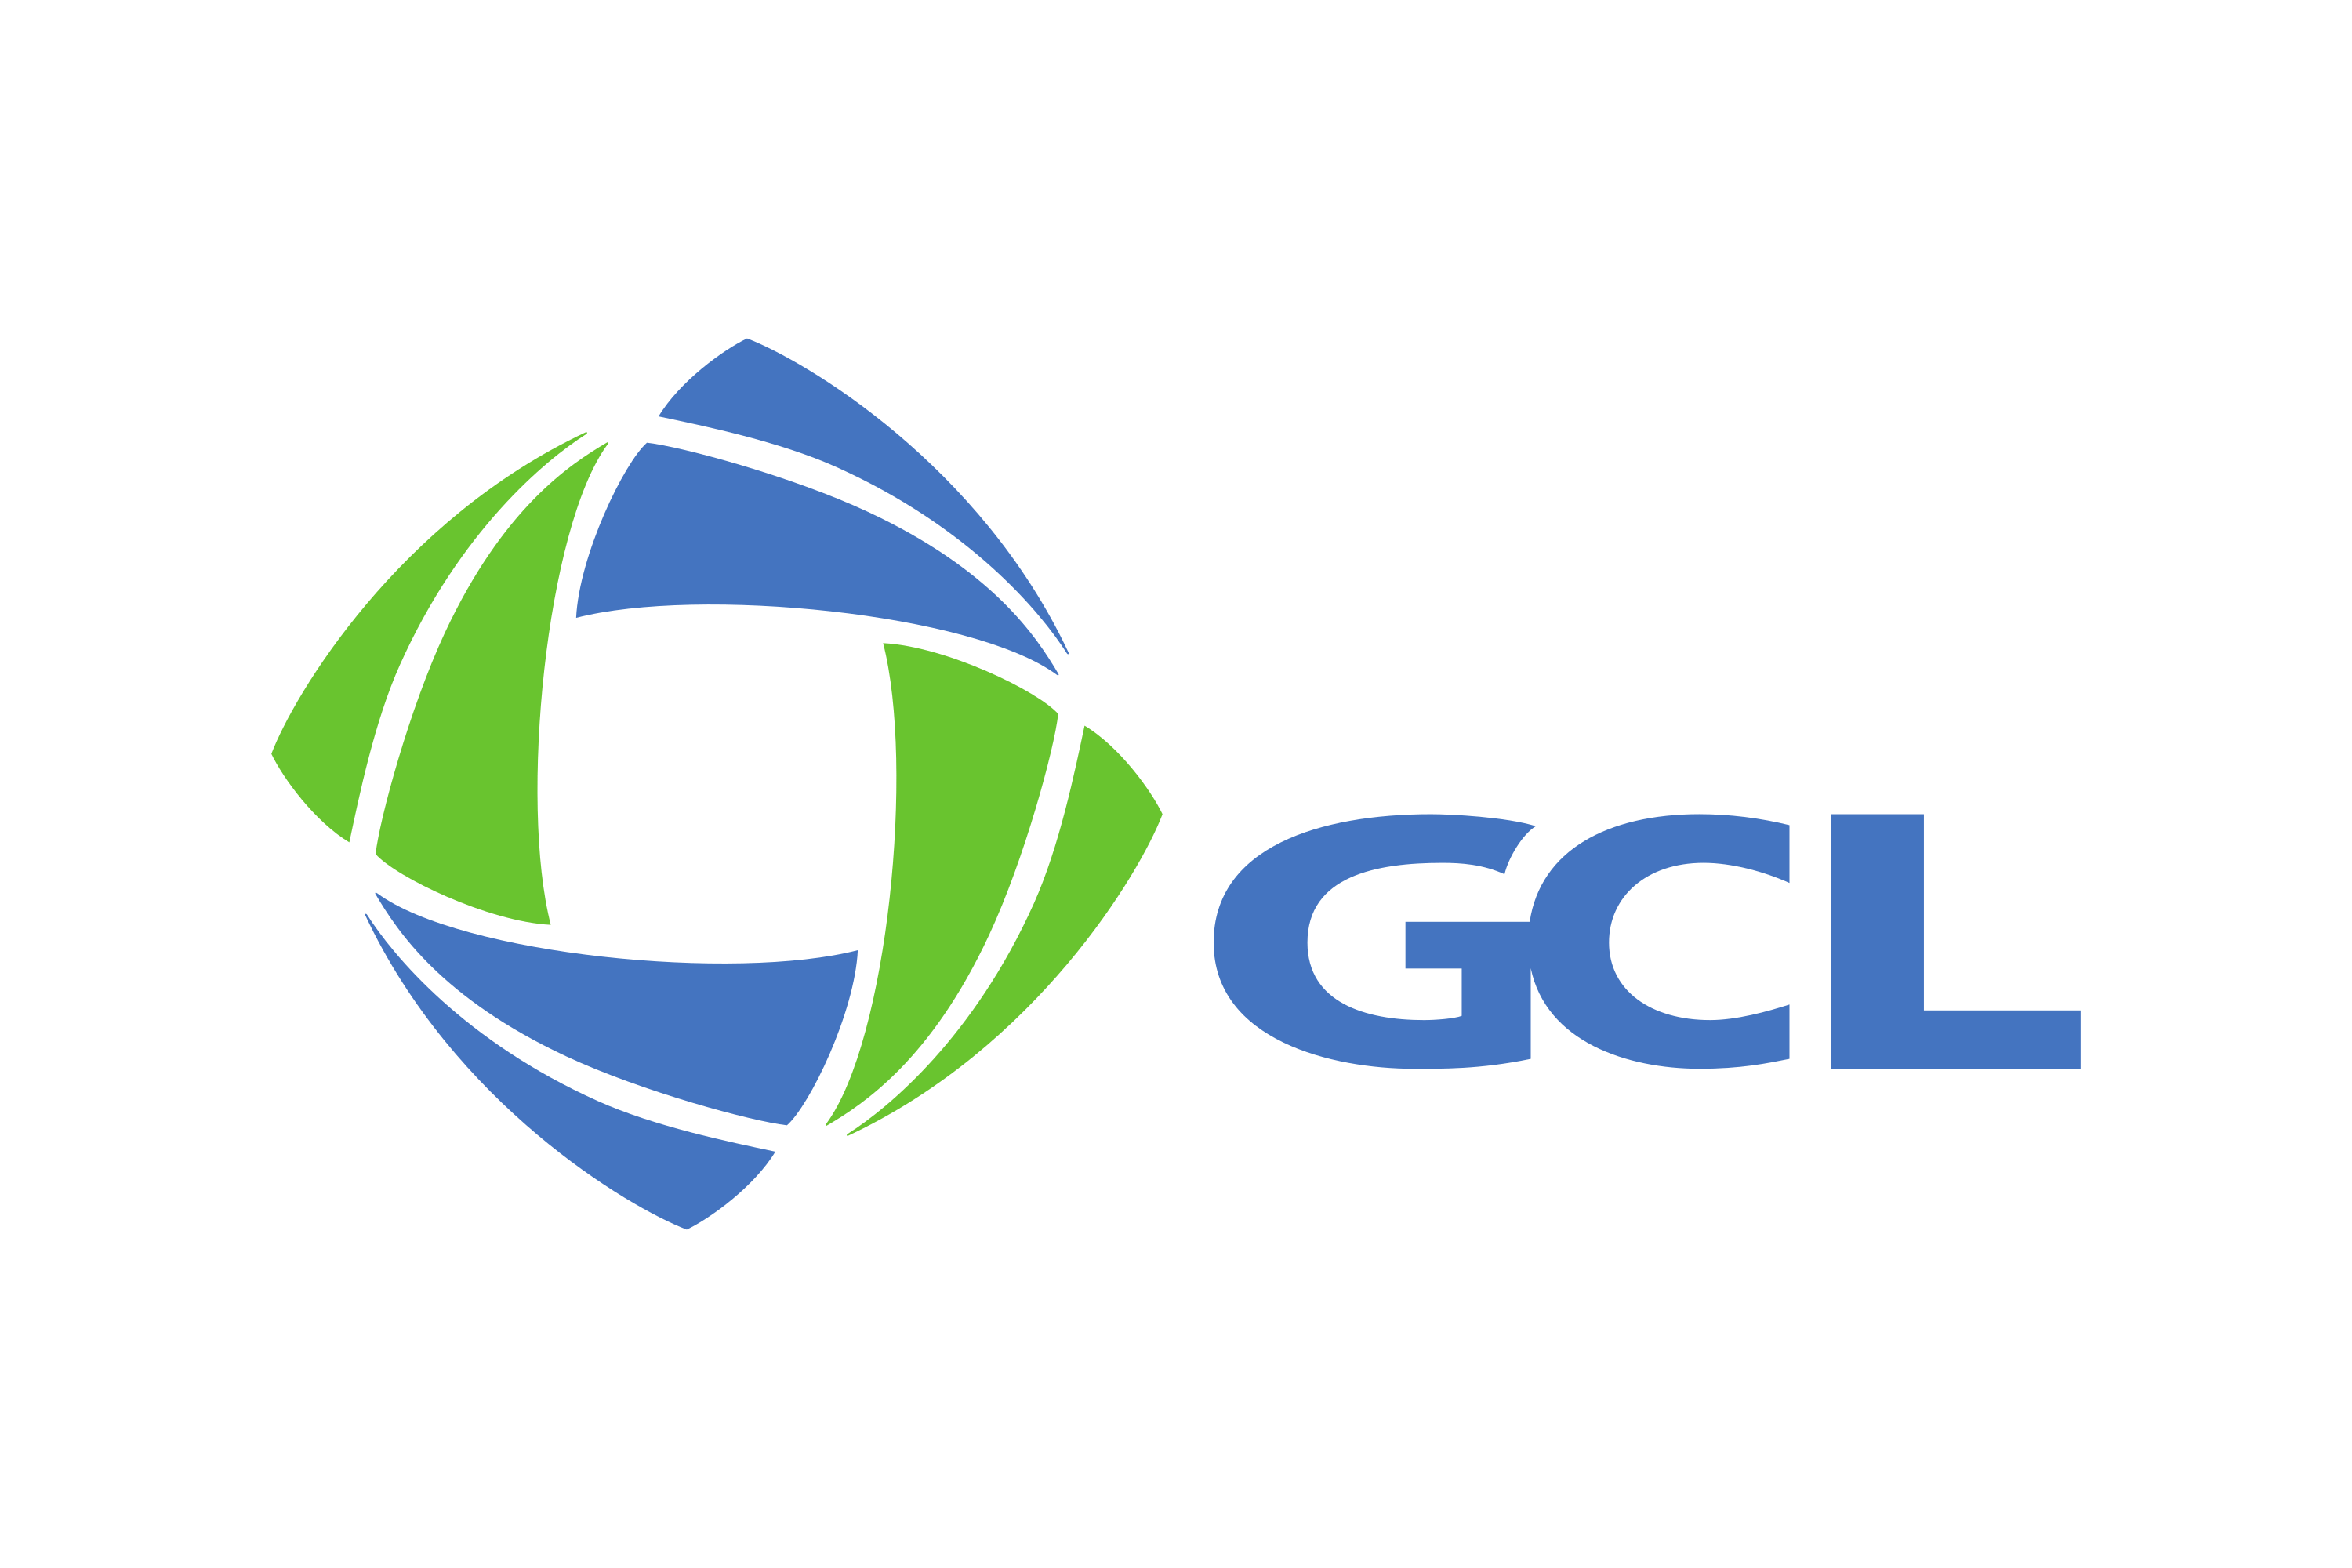 GCL-Poly-Logo.wine